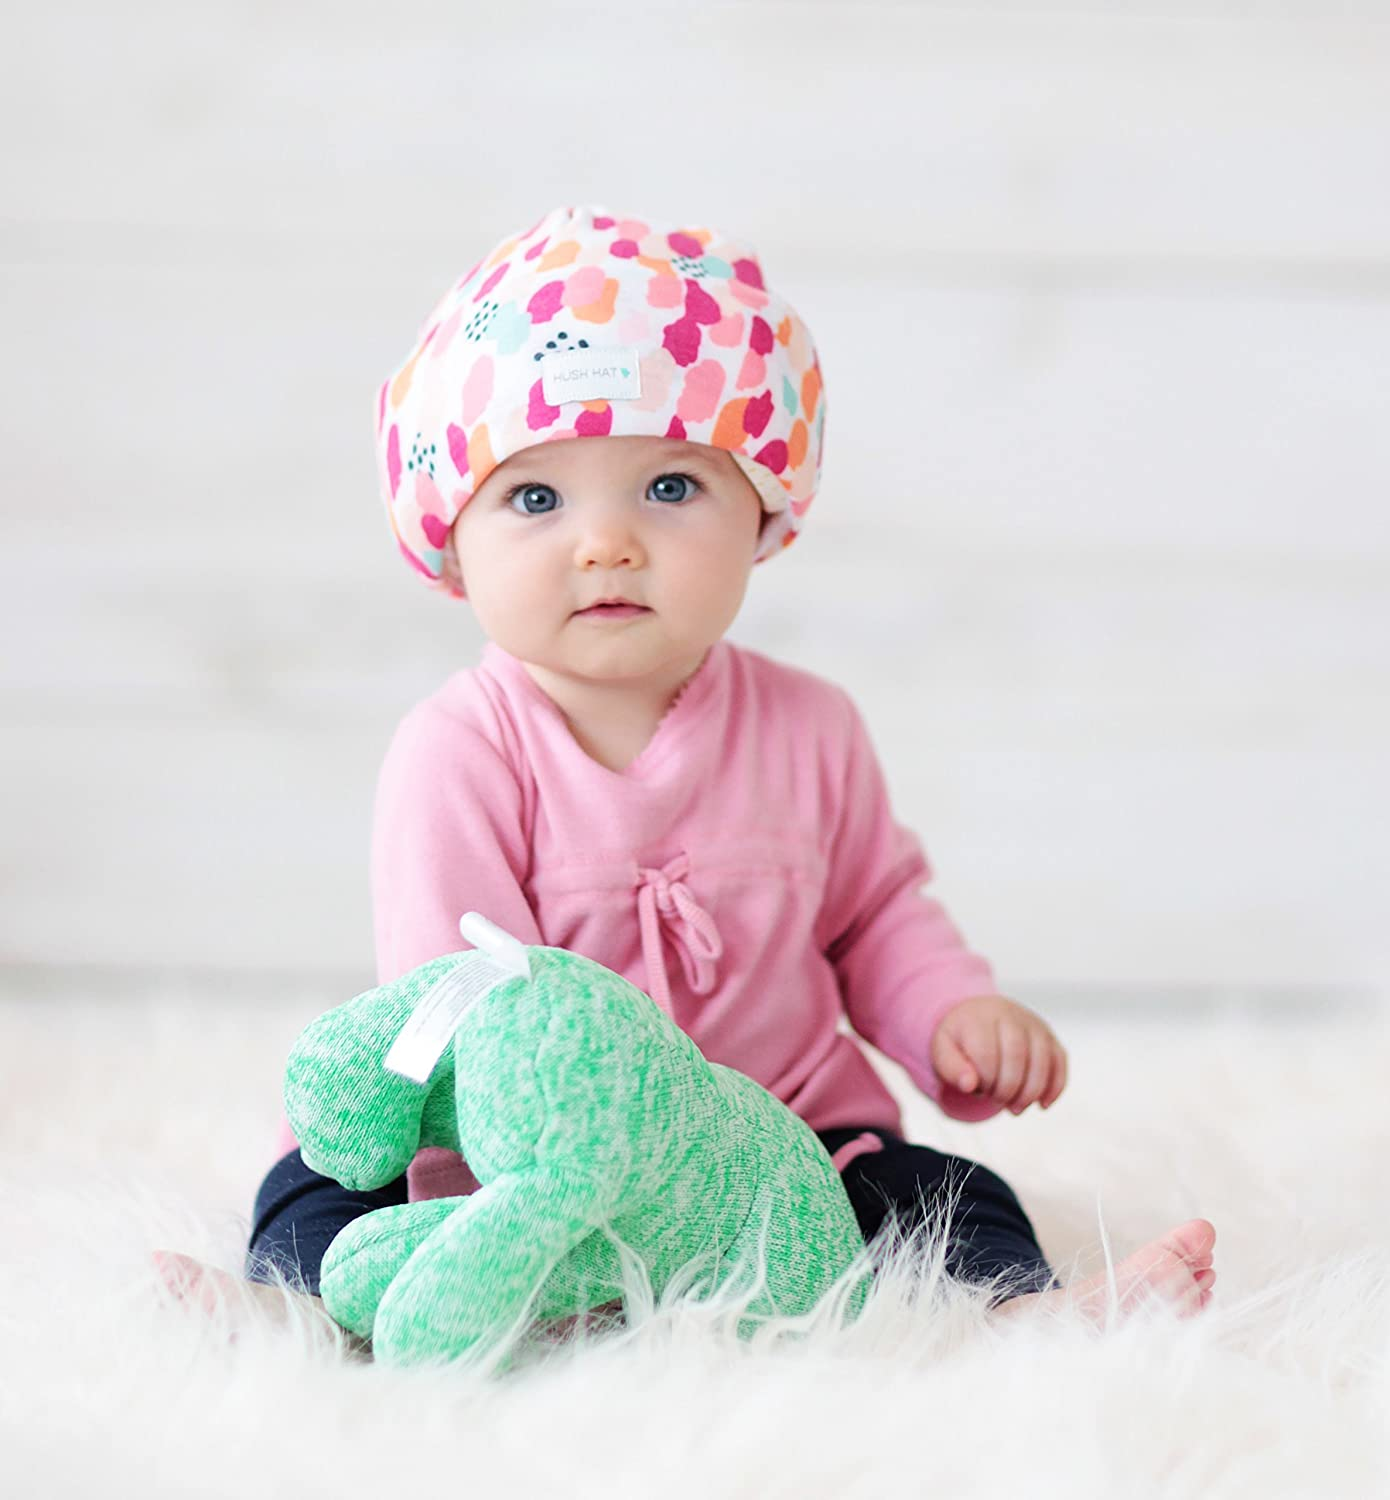 Hush Baby Hat with Softsound Technology and Medical Grade Sound Absorbing Foam Topaz Mint Green//Small